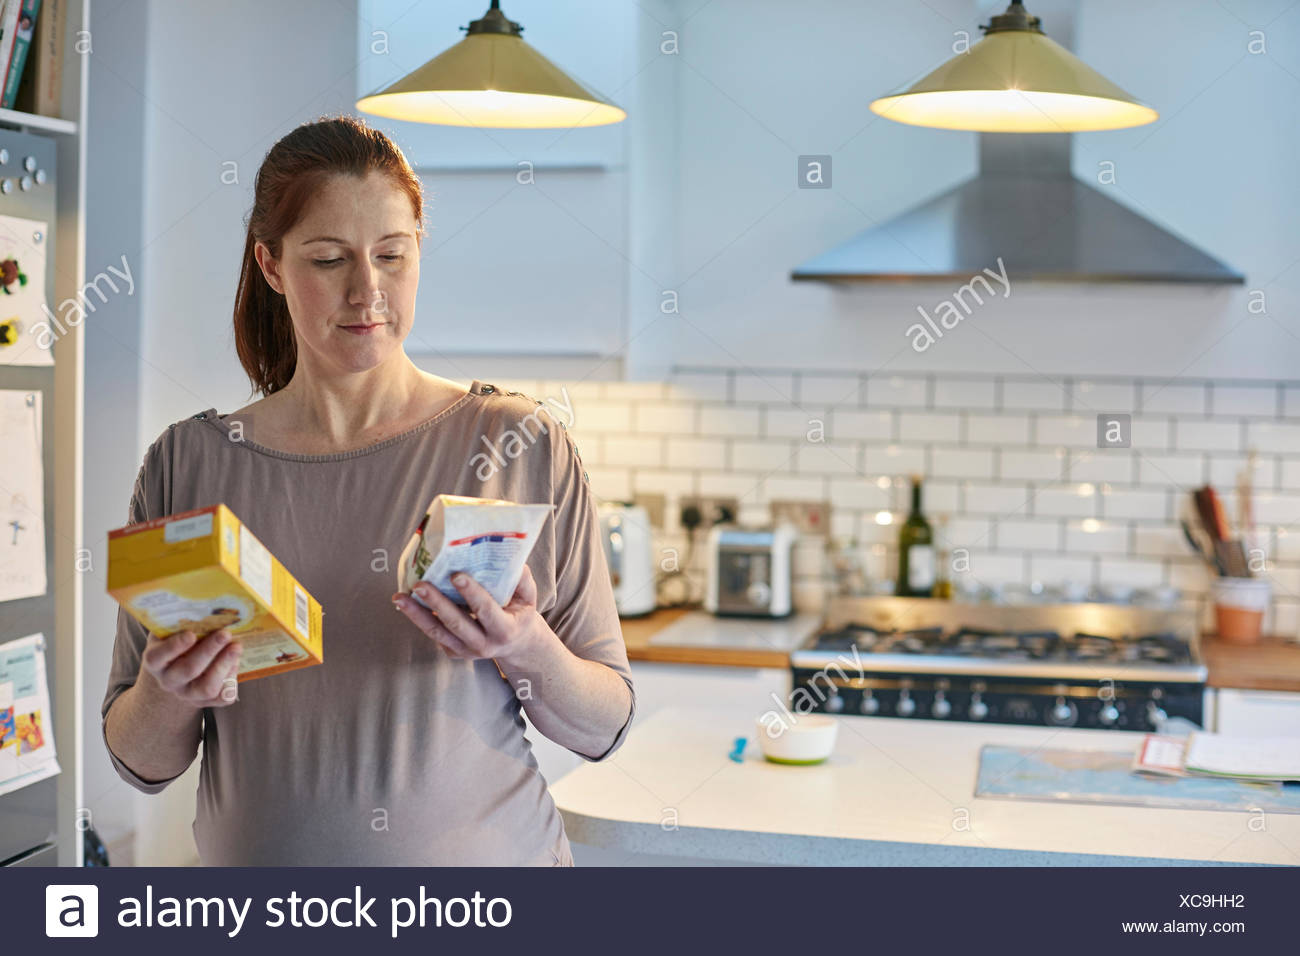 woman with a toaster